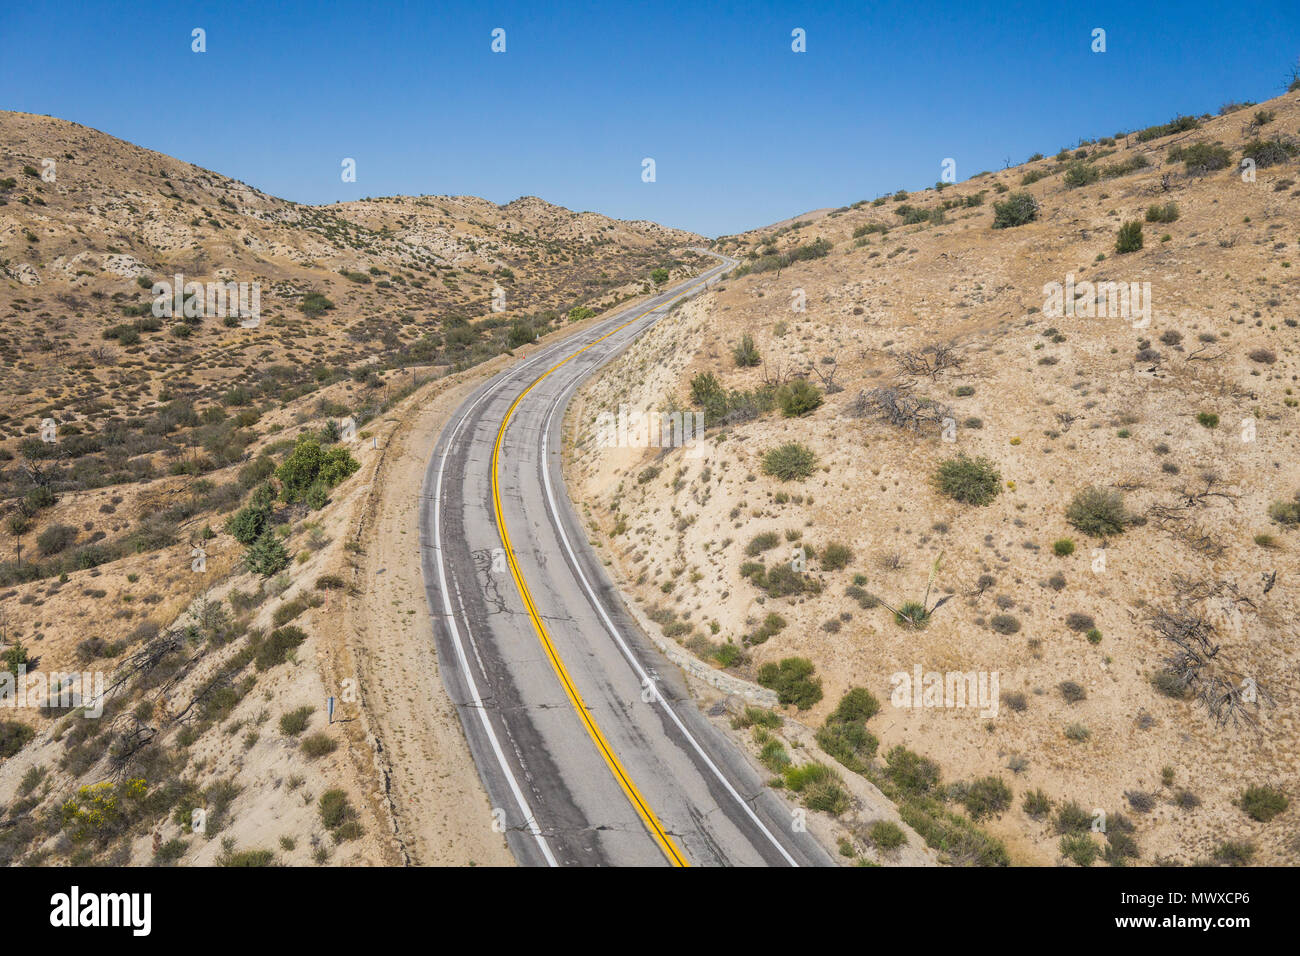 Asphalt highway bends around a curve in the empty wilderness of the American southwest. - Stock Image